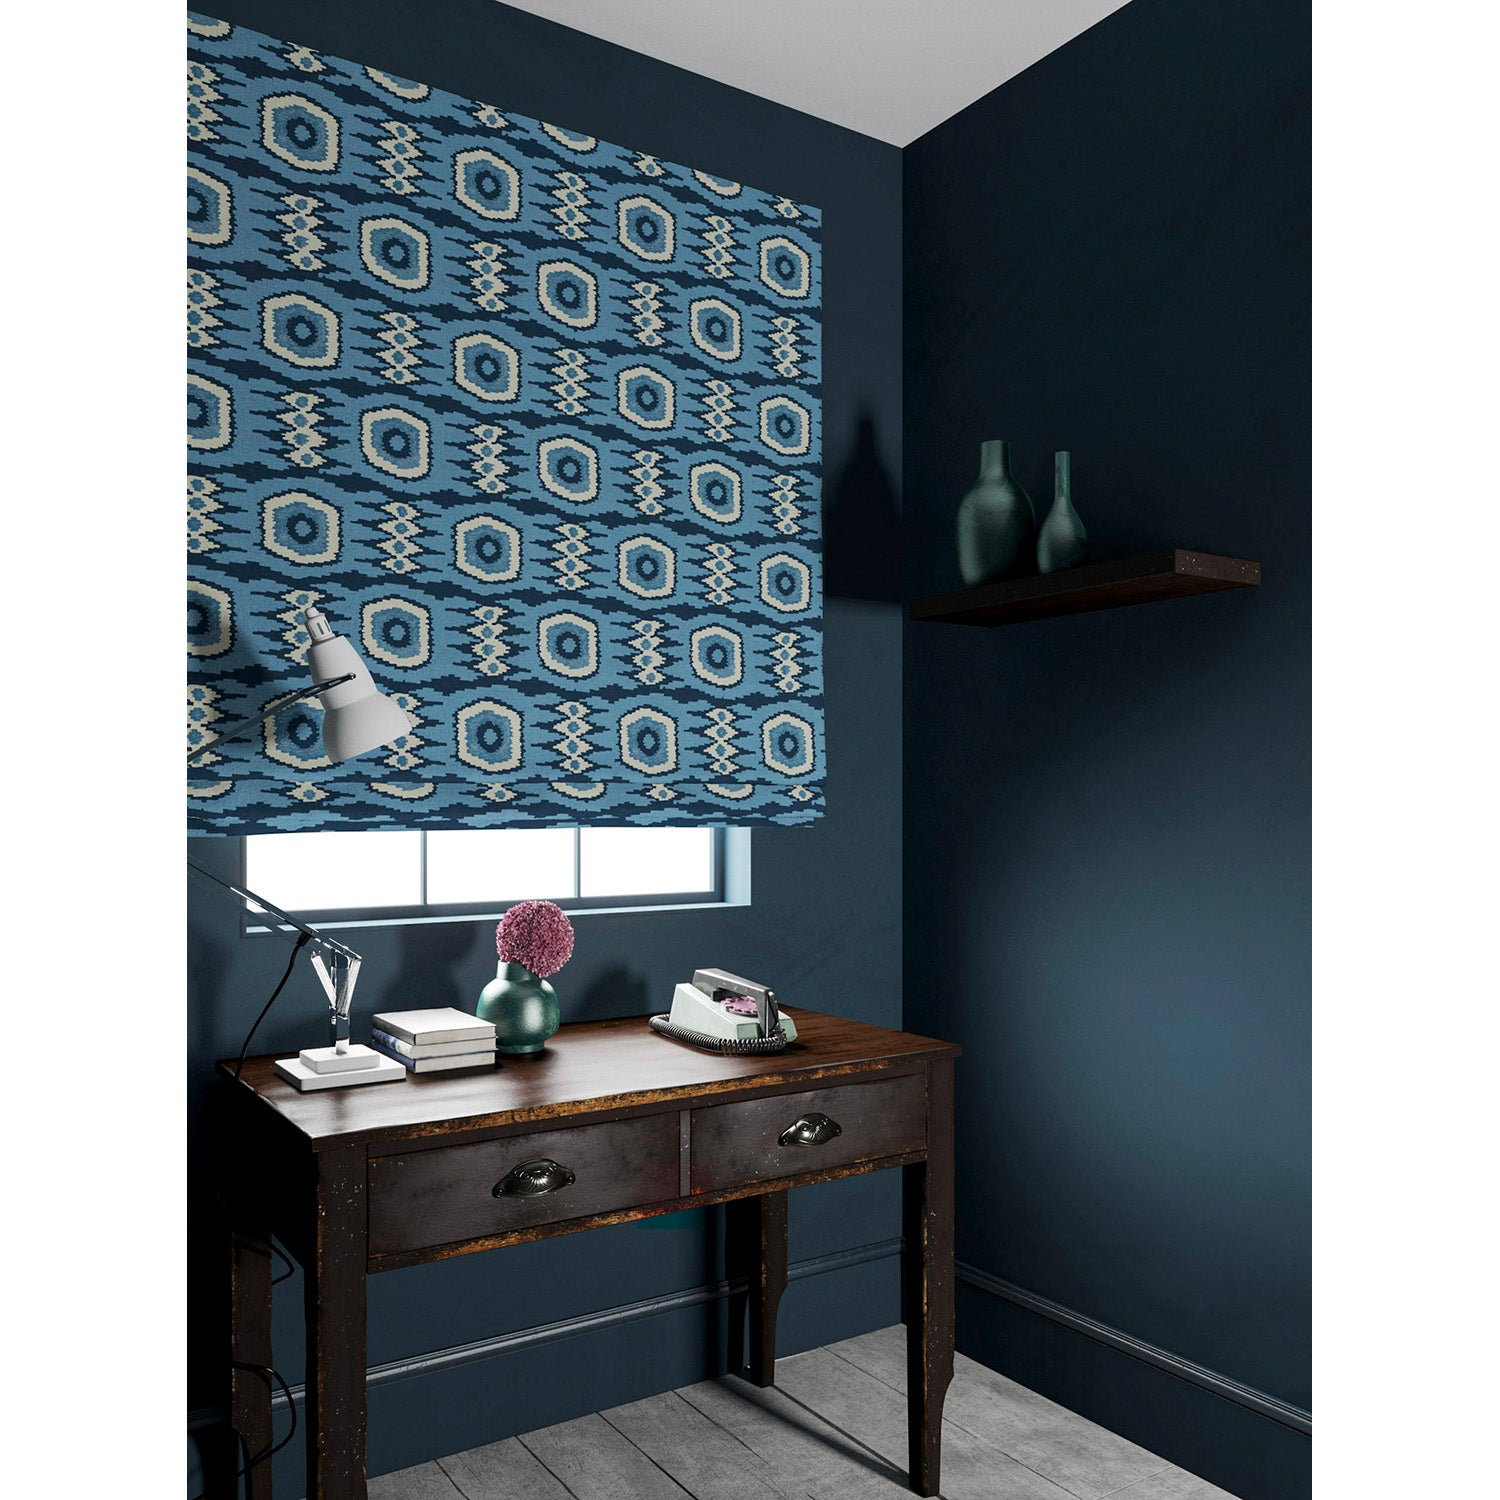 Velvet blind in a blue velvet fabric with stain resistant finish and abstract print